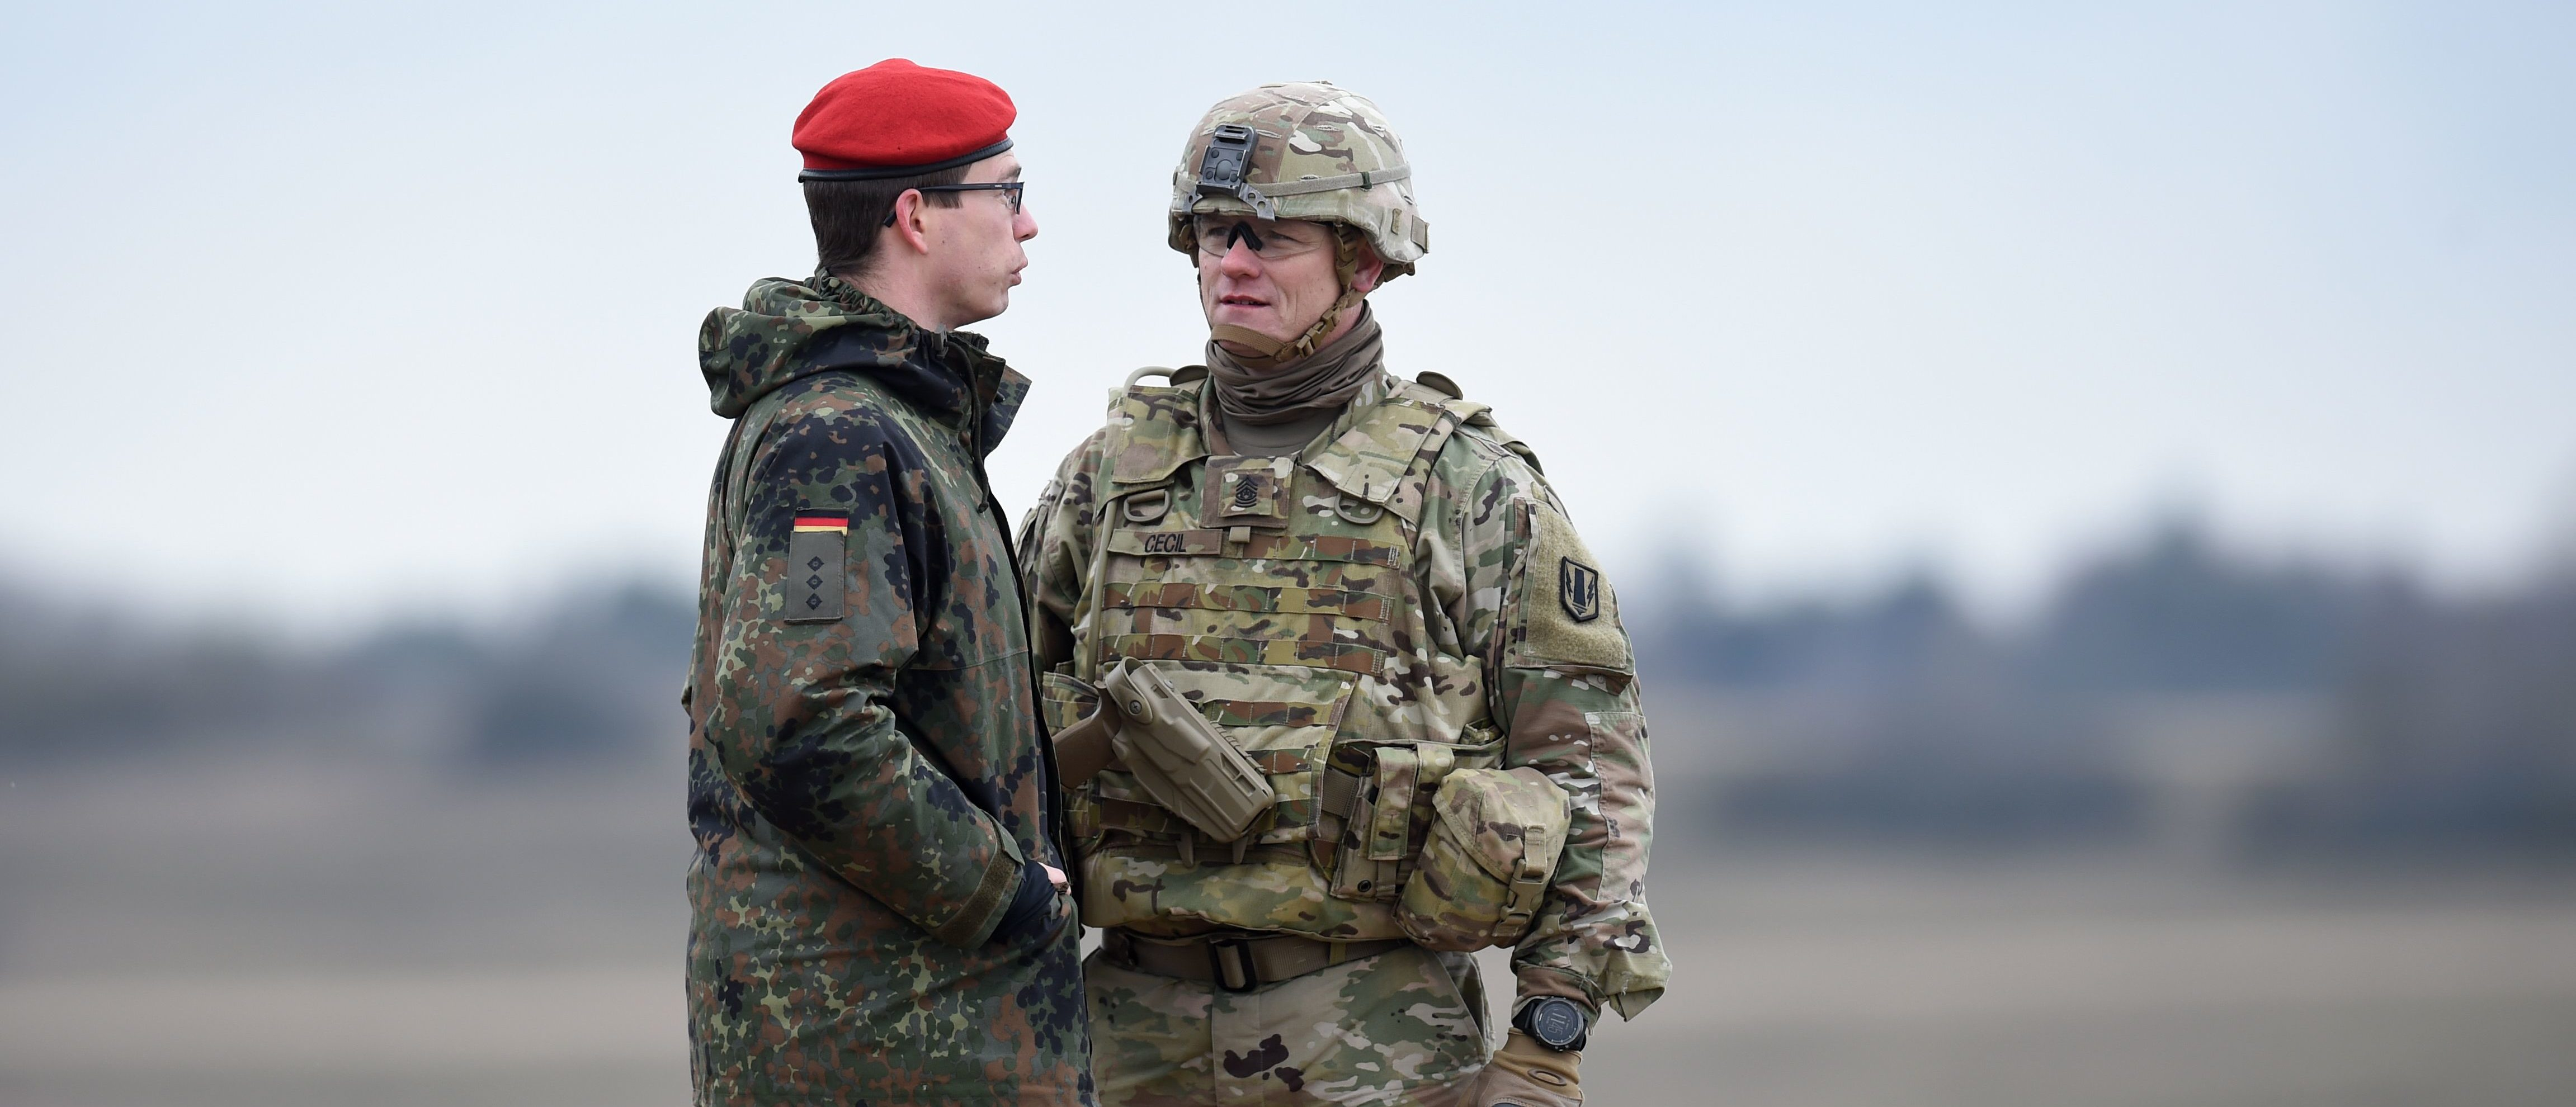 A Bundeswehr soldier (L) and an US soldier talk together during an artillery live fire event by the US Army Europe's 41st Field Artillery Brigade at the military training area in Grafenwoehr, southern Germany, on March 4, 2020. - The 41st Field Artillery Brigade plans, prepares, executes and assesses operations to provide US Army Europe with long-range precision strike capabilities. (Photo by Christof STACHE / AFP) (Photo by CHRISTOF STACHE/AFP via Getty Images)